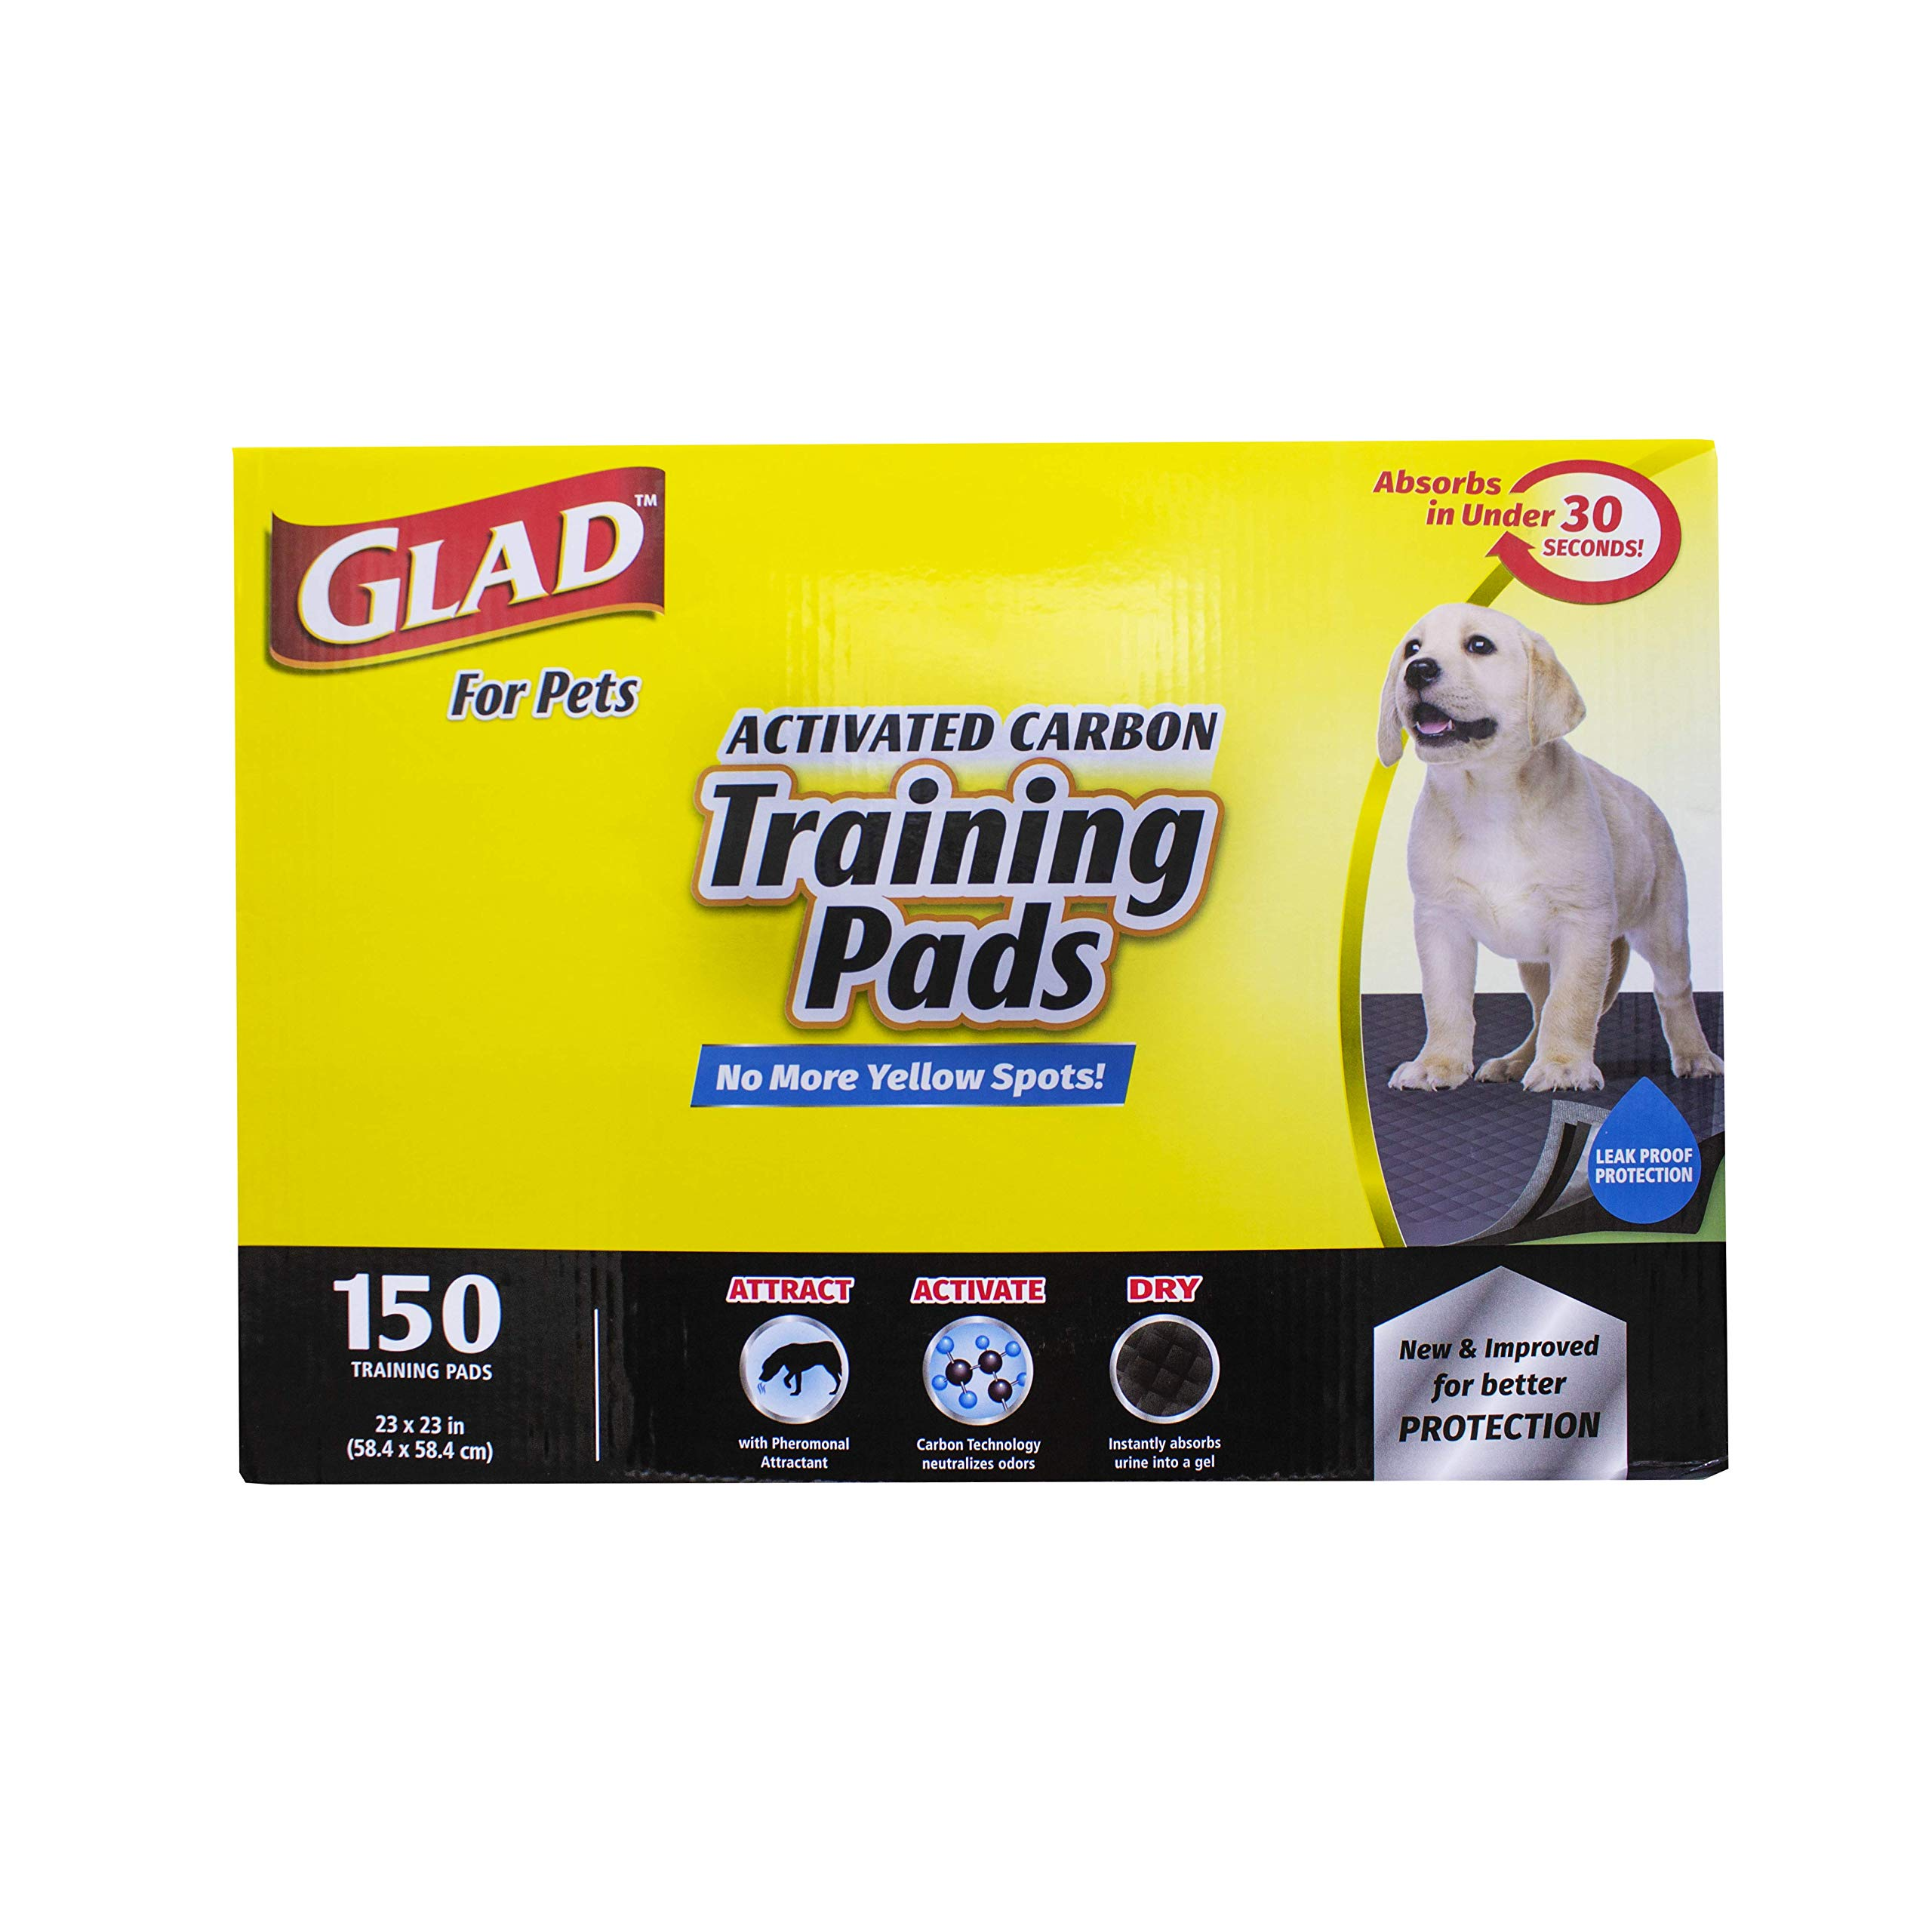 Glad for Pets Black Charcoal Puppy Pads | Puppy Potty Training Pads That ABSORB & NEUTRALIZE Urine Instantly | New & Improved Quality, 150 count by Glad for Pets